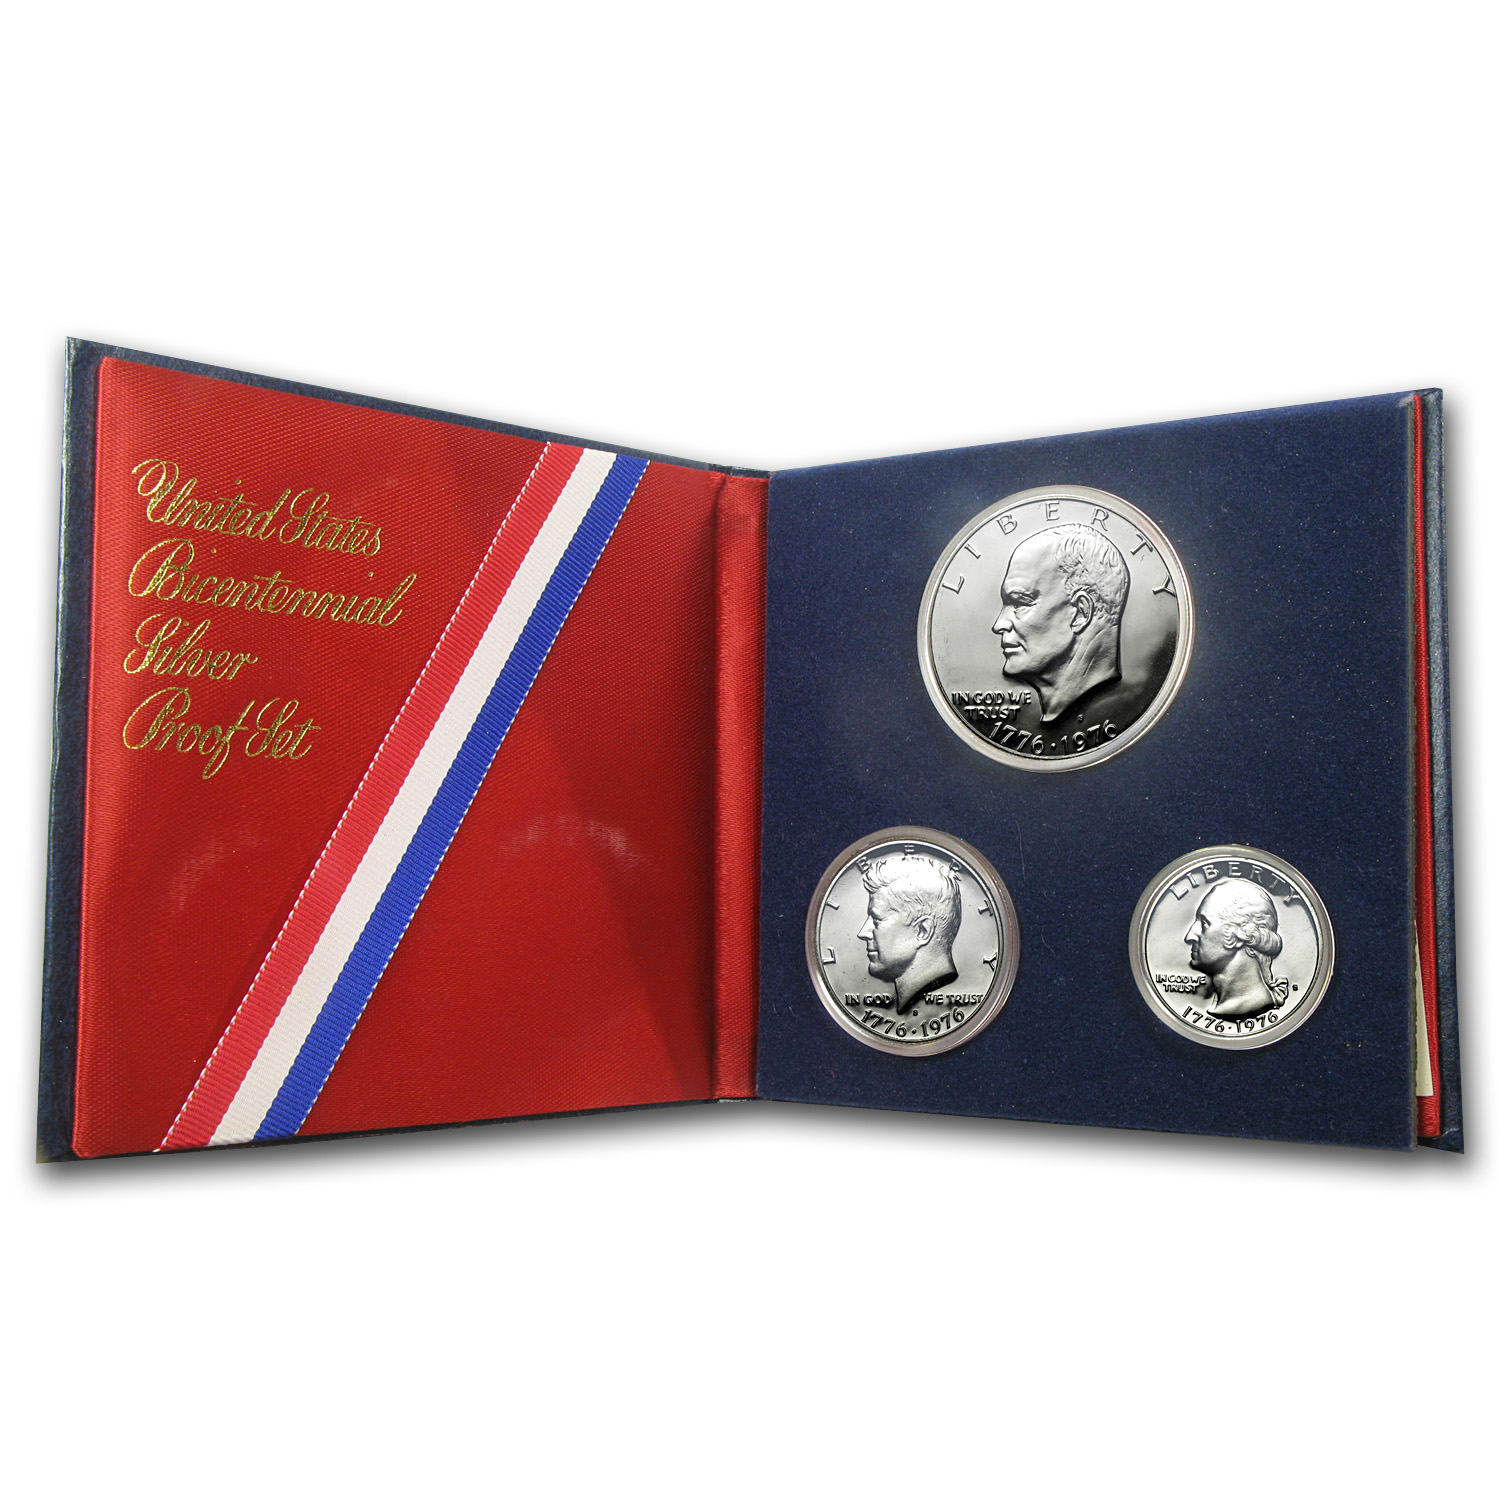 1976 Bicentennial U.S. Proof Set (3 pc. Silver)